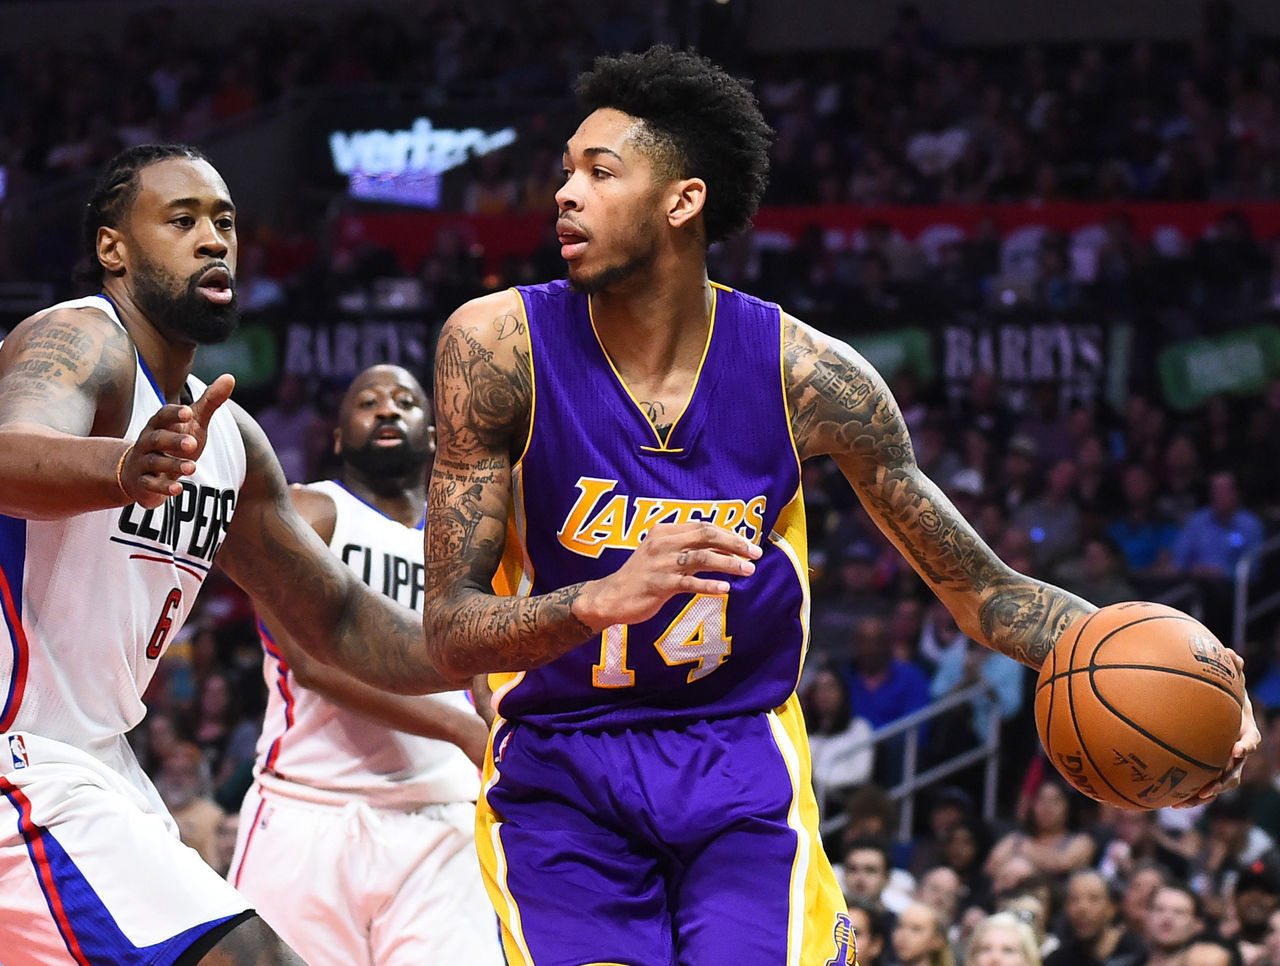 Cropped 2017 04 01t222426z 811256146 nocid rtrmadp 3 nba los angeles lakers at los angeles clippers